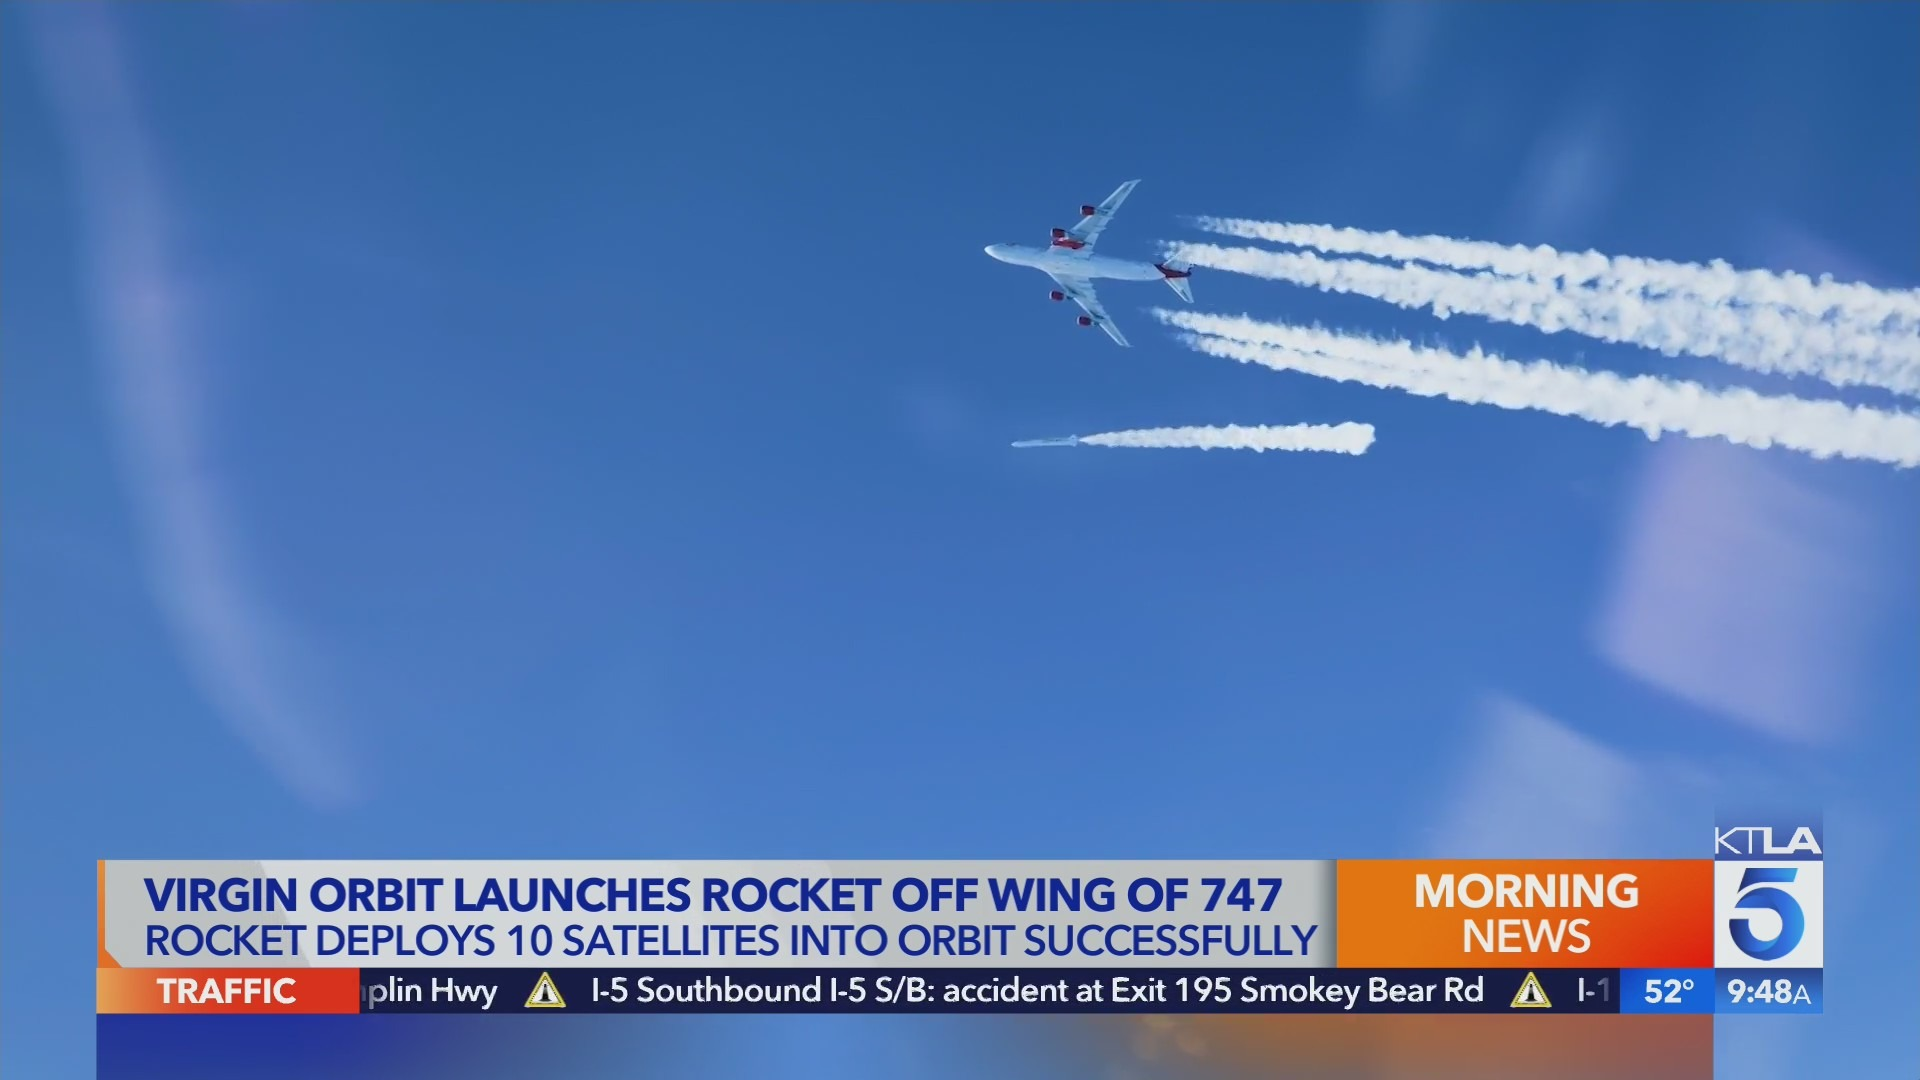 Chief Test Pilot Kelly Latimer Virgin Orbit rocket launch